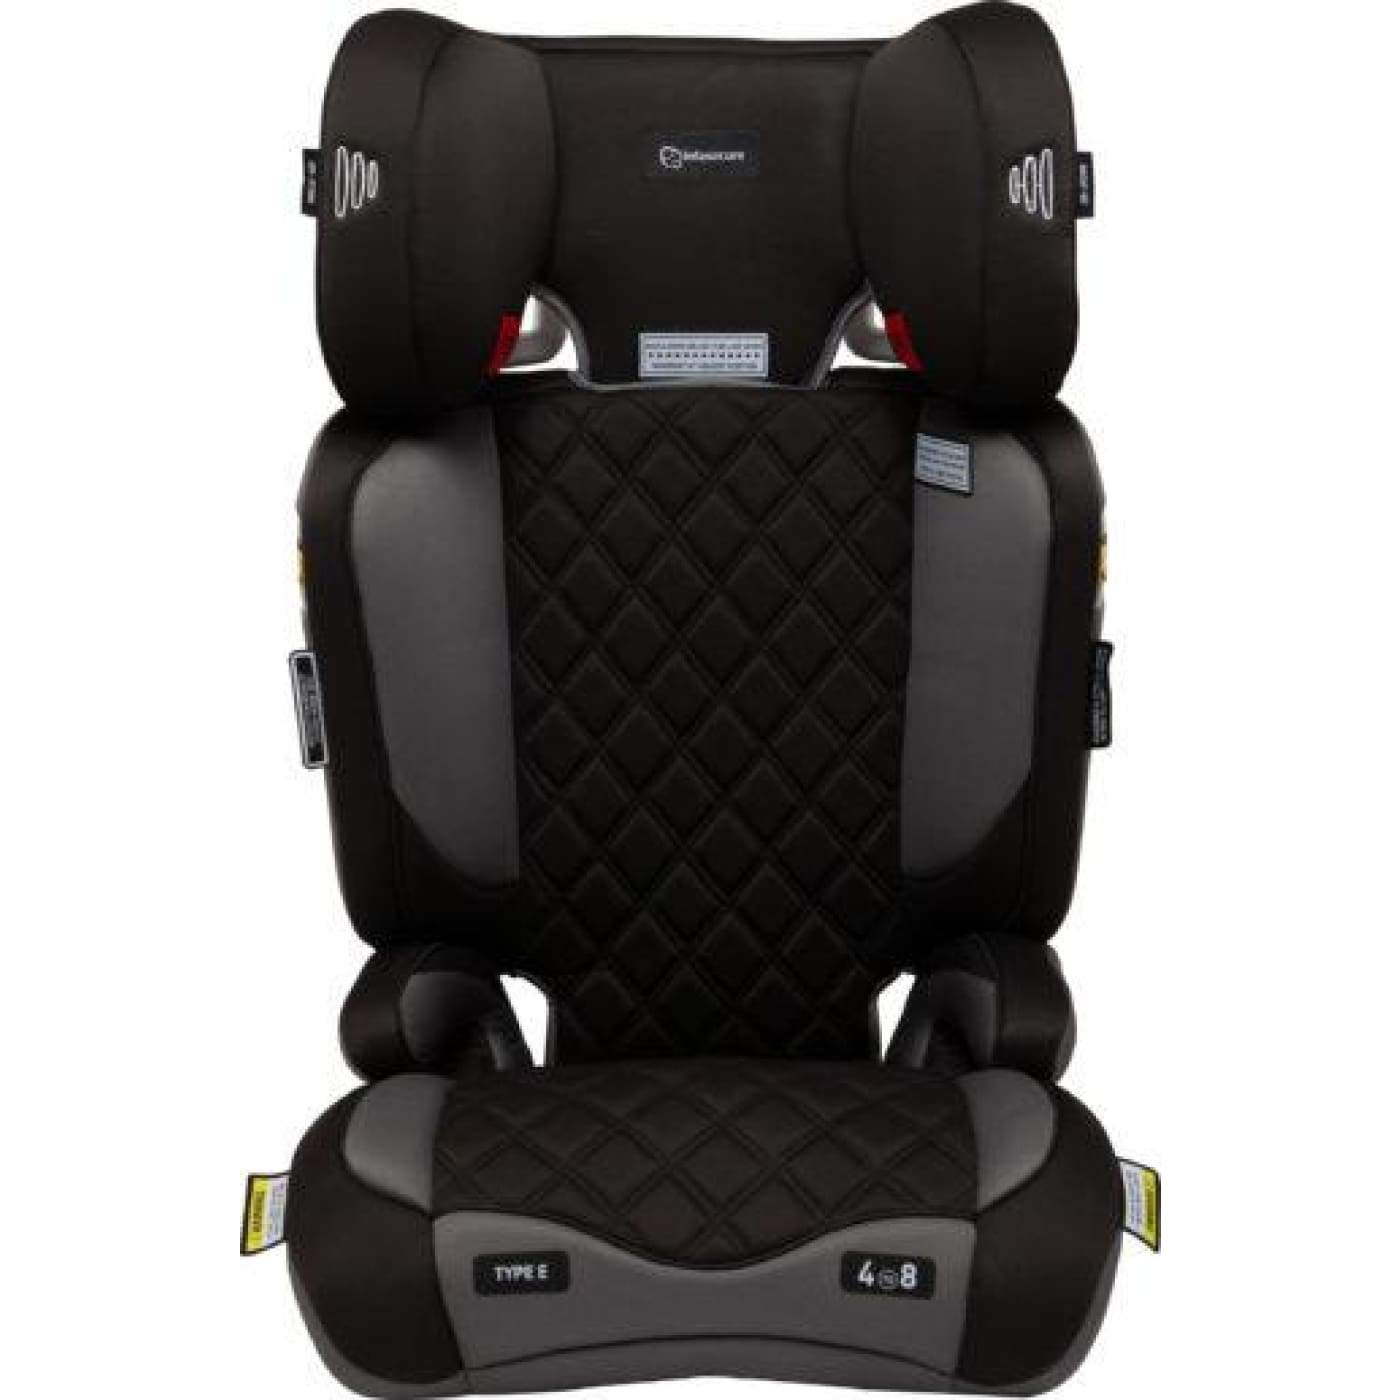 Infasecure Aspire Premium Booster Seat 4-8 years - NIGHT - Booster Seats (4-8Y)